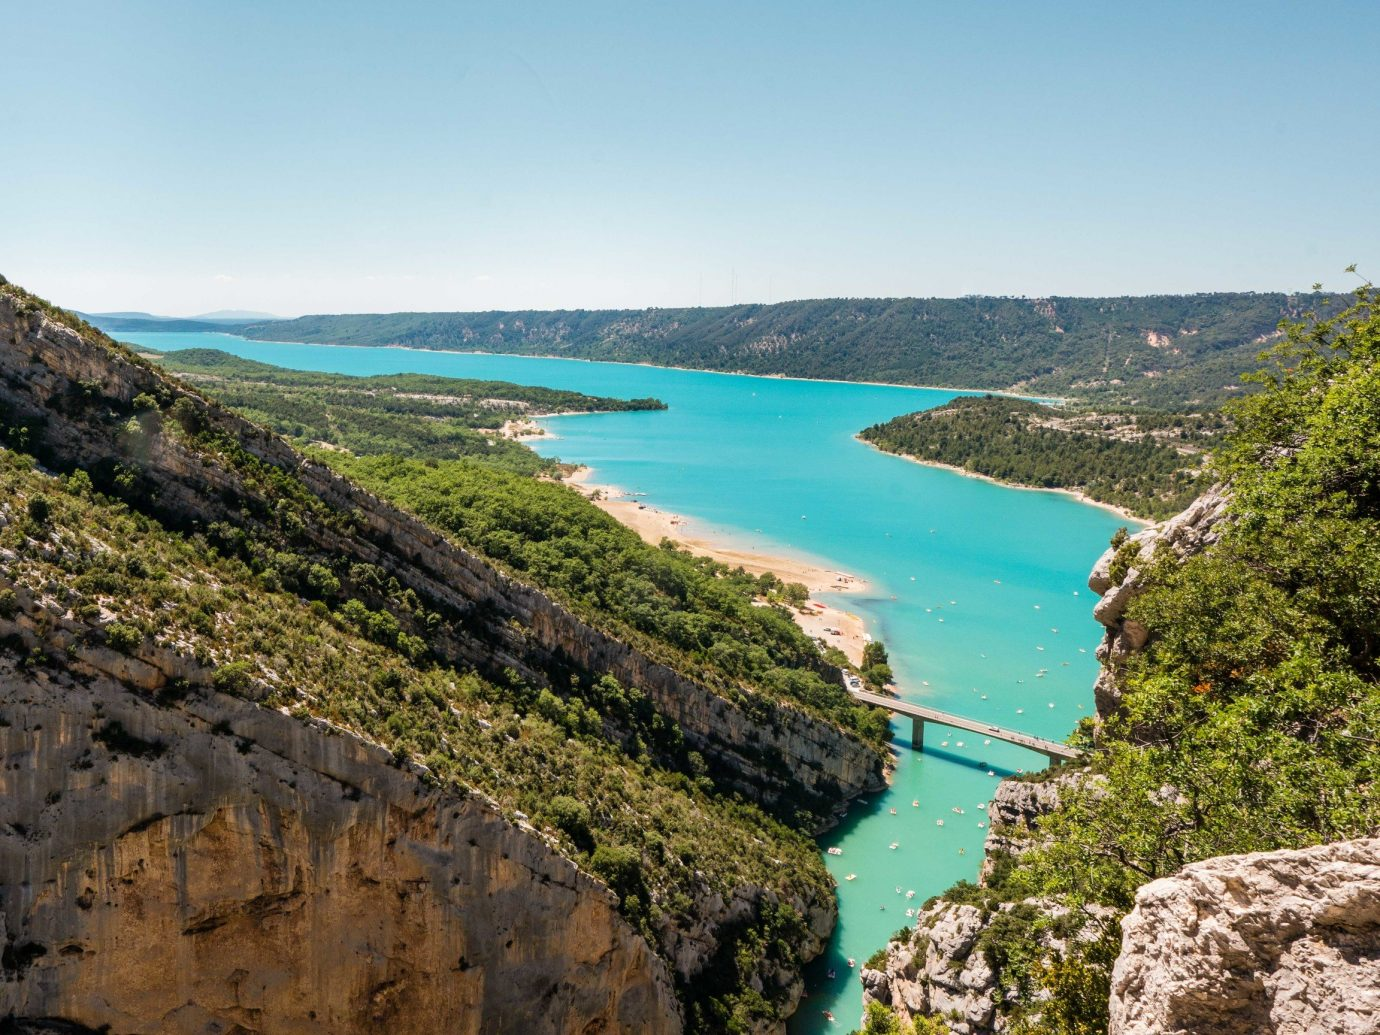 europe Outdoors + Adventure Trip Ideas nature reserve water reservoir sky River Coast Lake escarpment bay mountain national park tree water resources landscape rock tourism hill